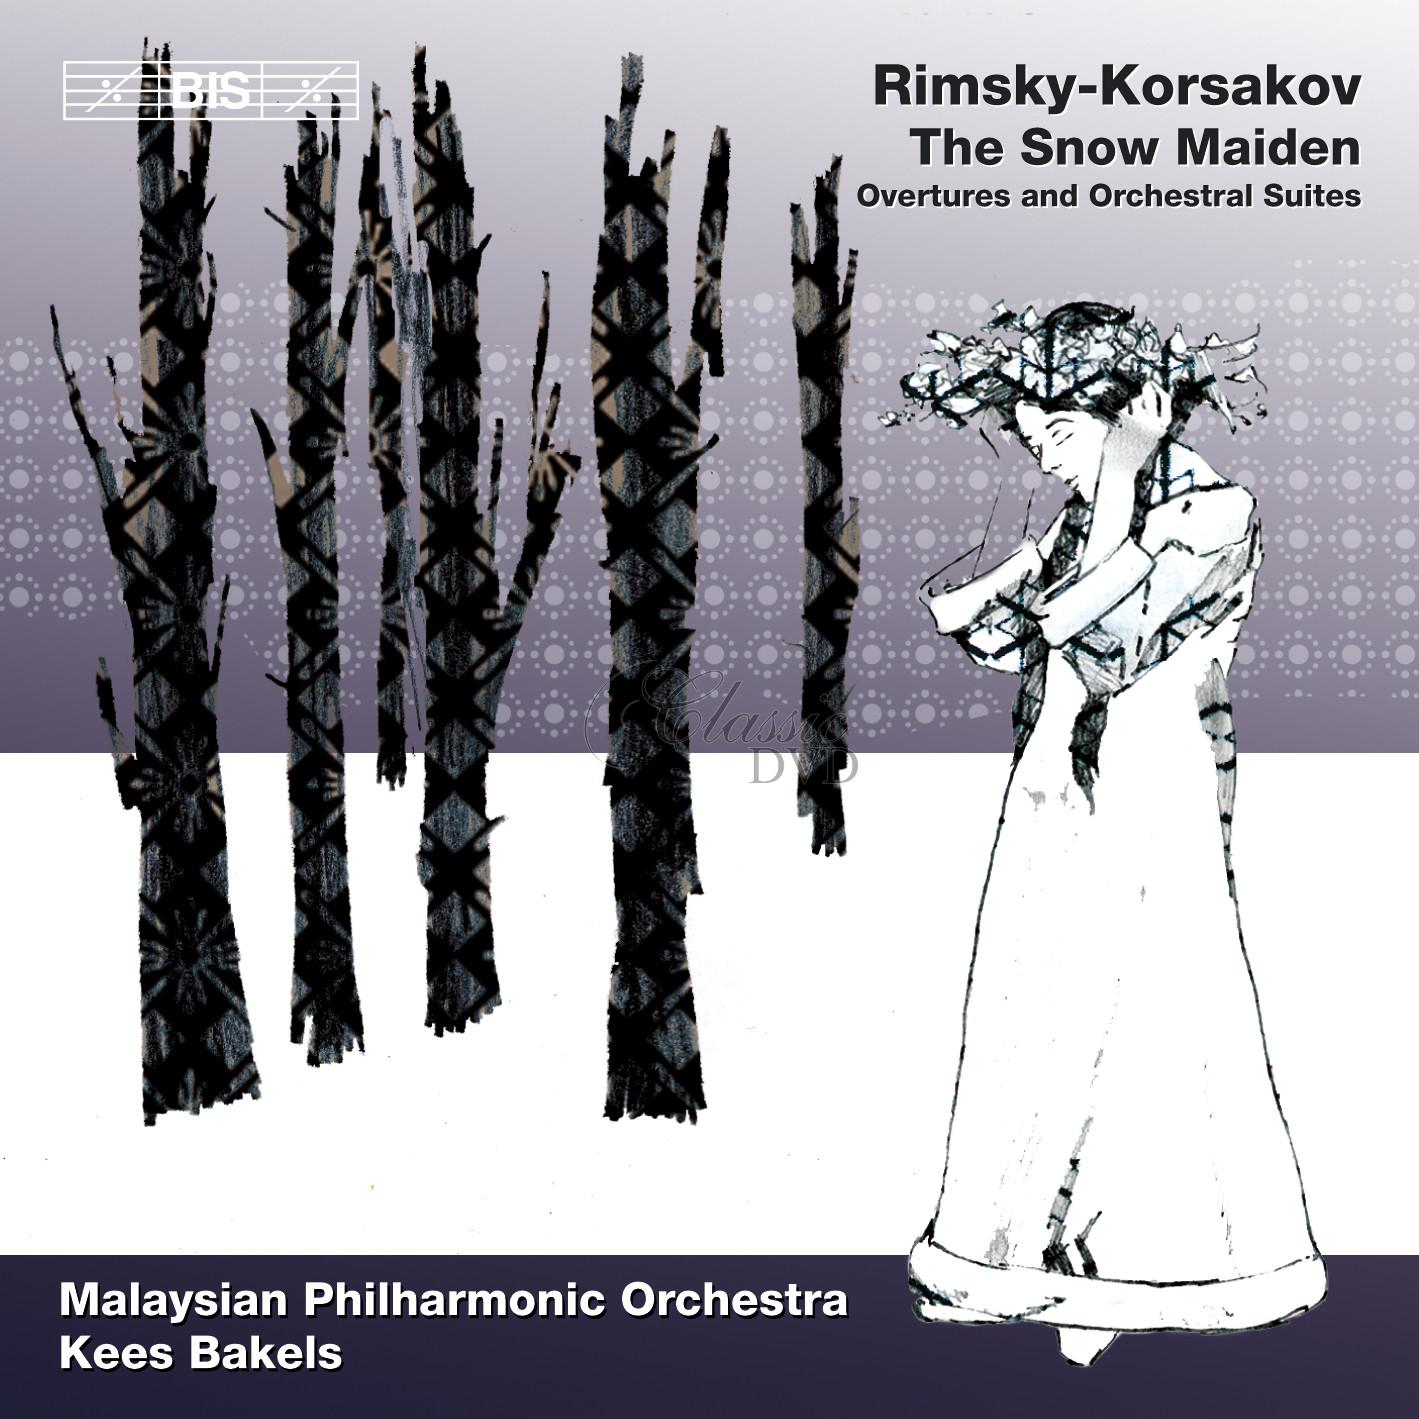 Rimsky-Korsakov - The Snow Maiden (CD)